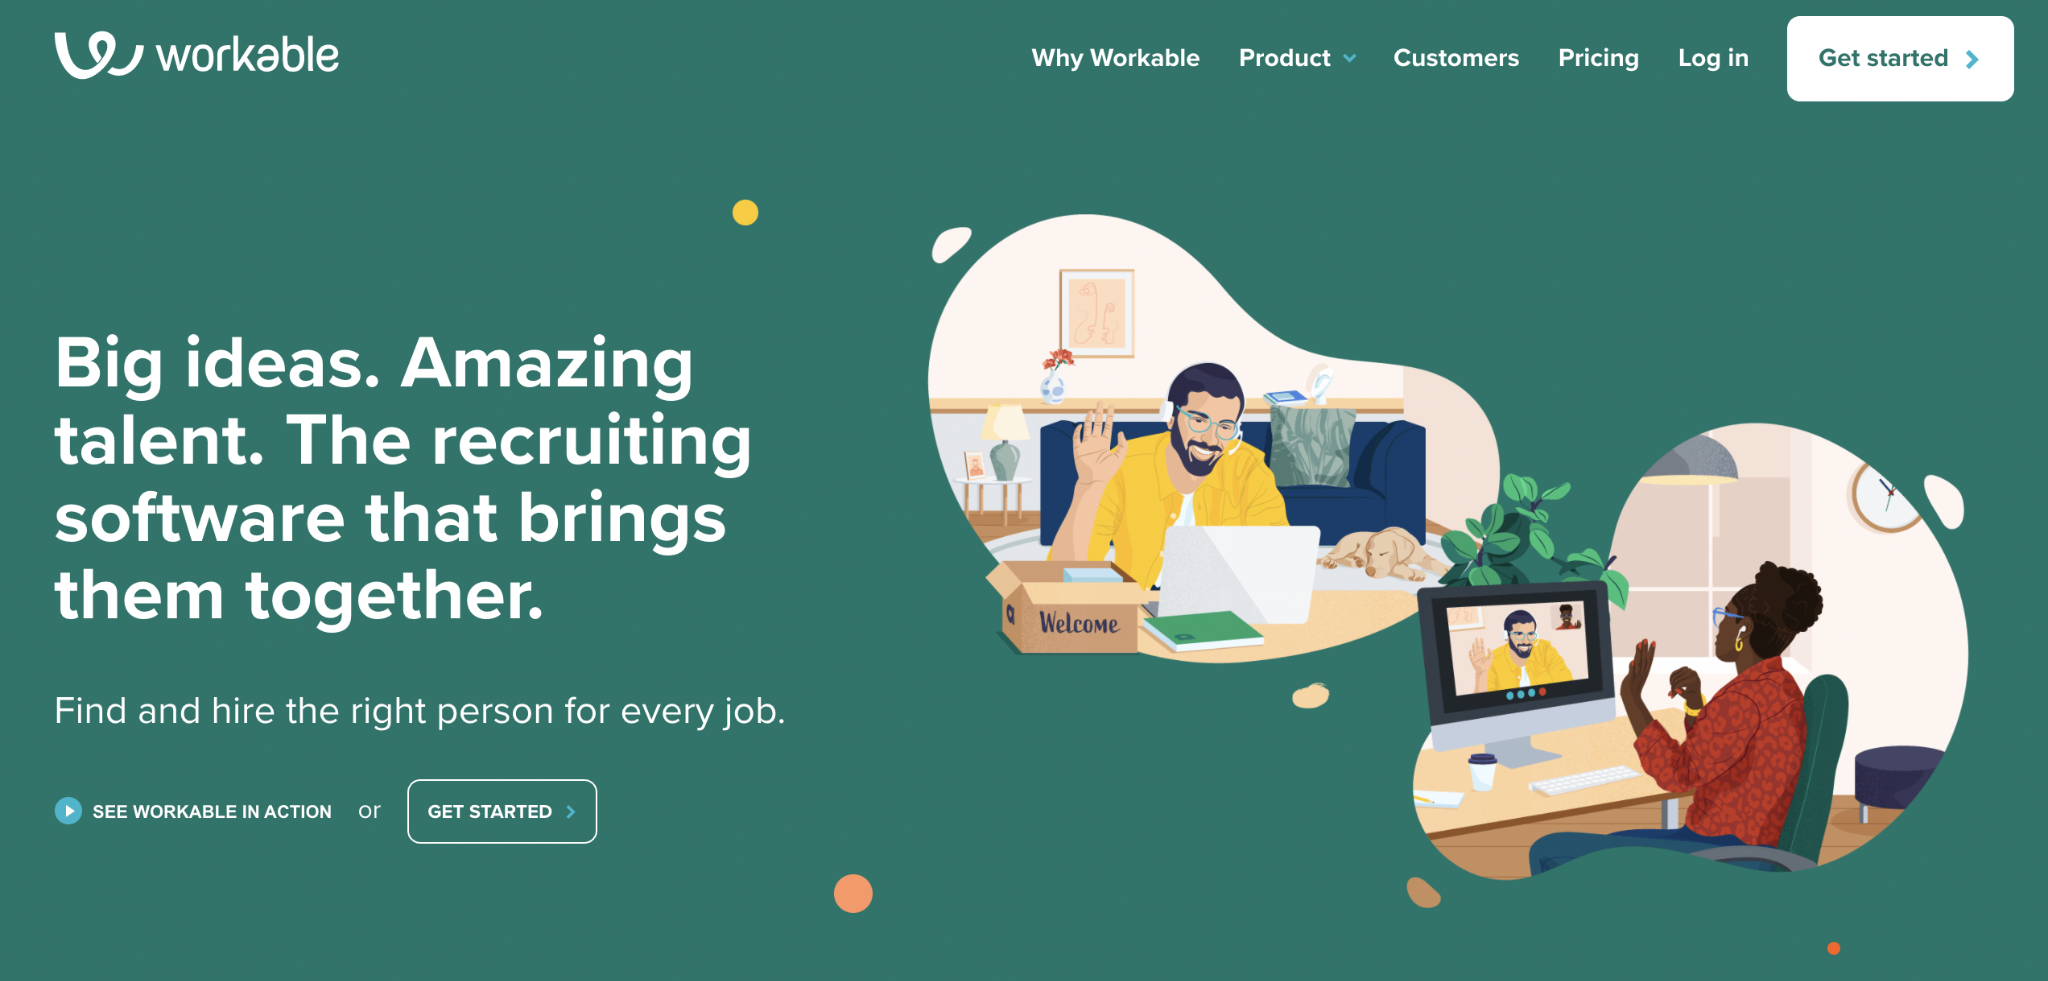 Zoho Recruit Competitor #3: Workable